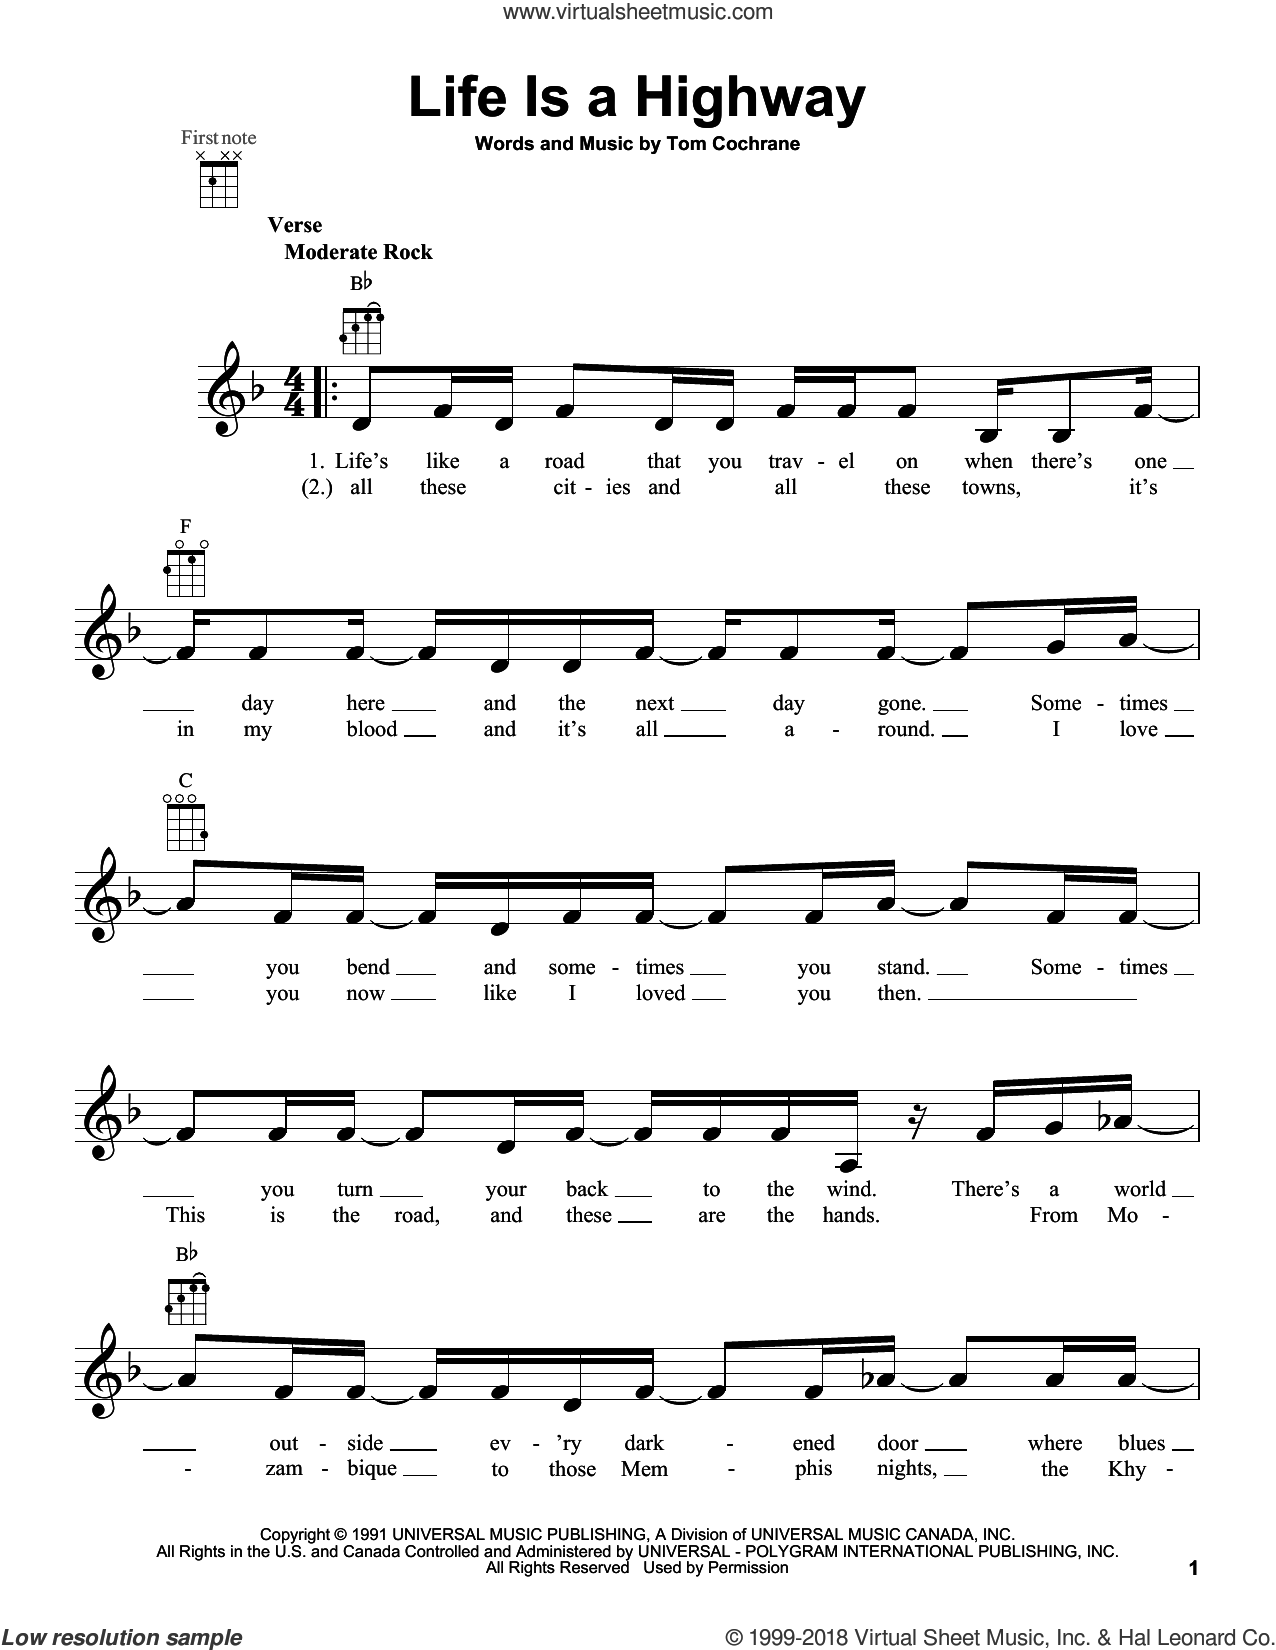 Life Is A Highway sheet music for ukulele by Tom Cochrane, intermediate skill level